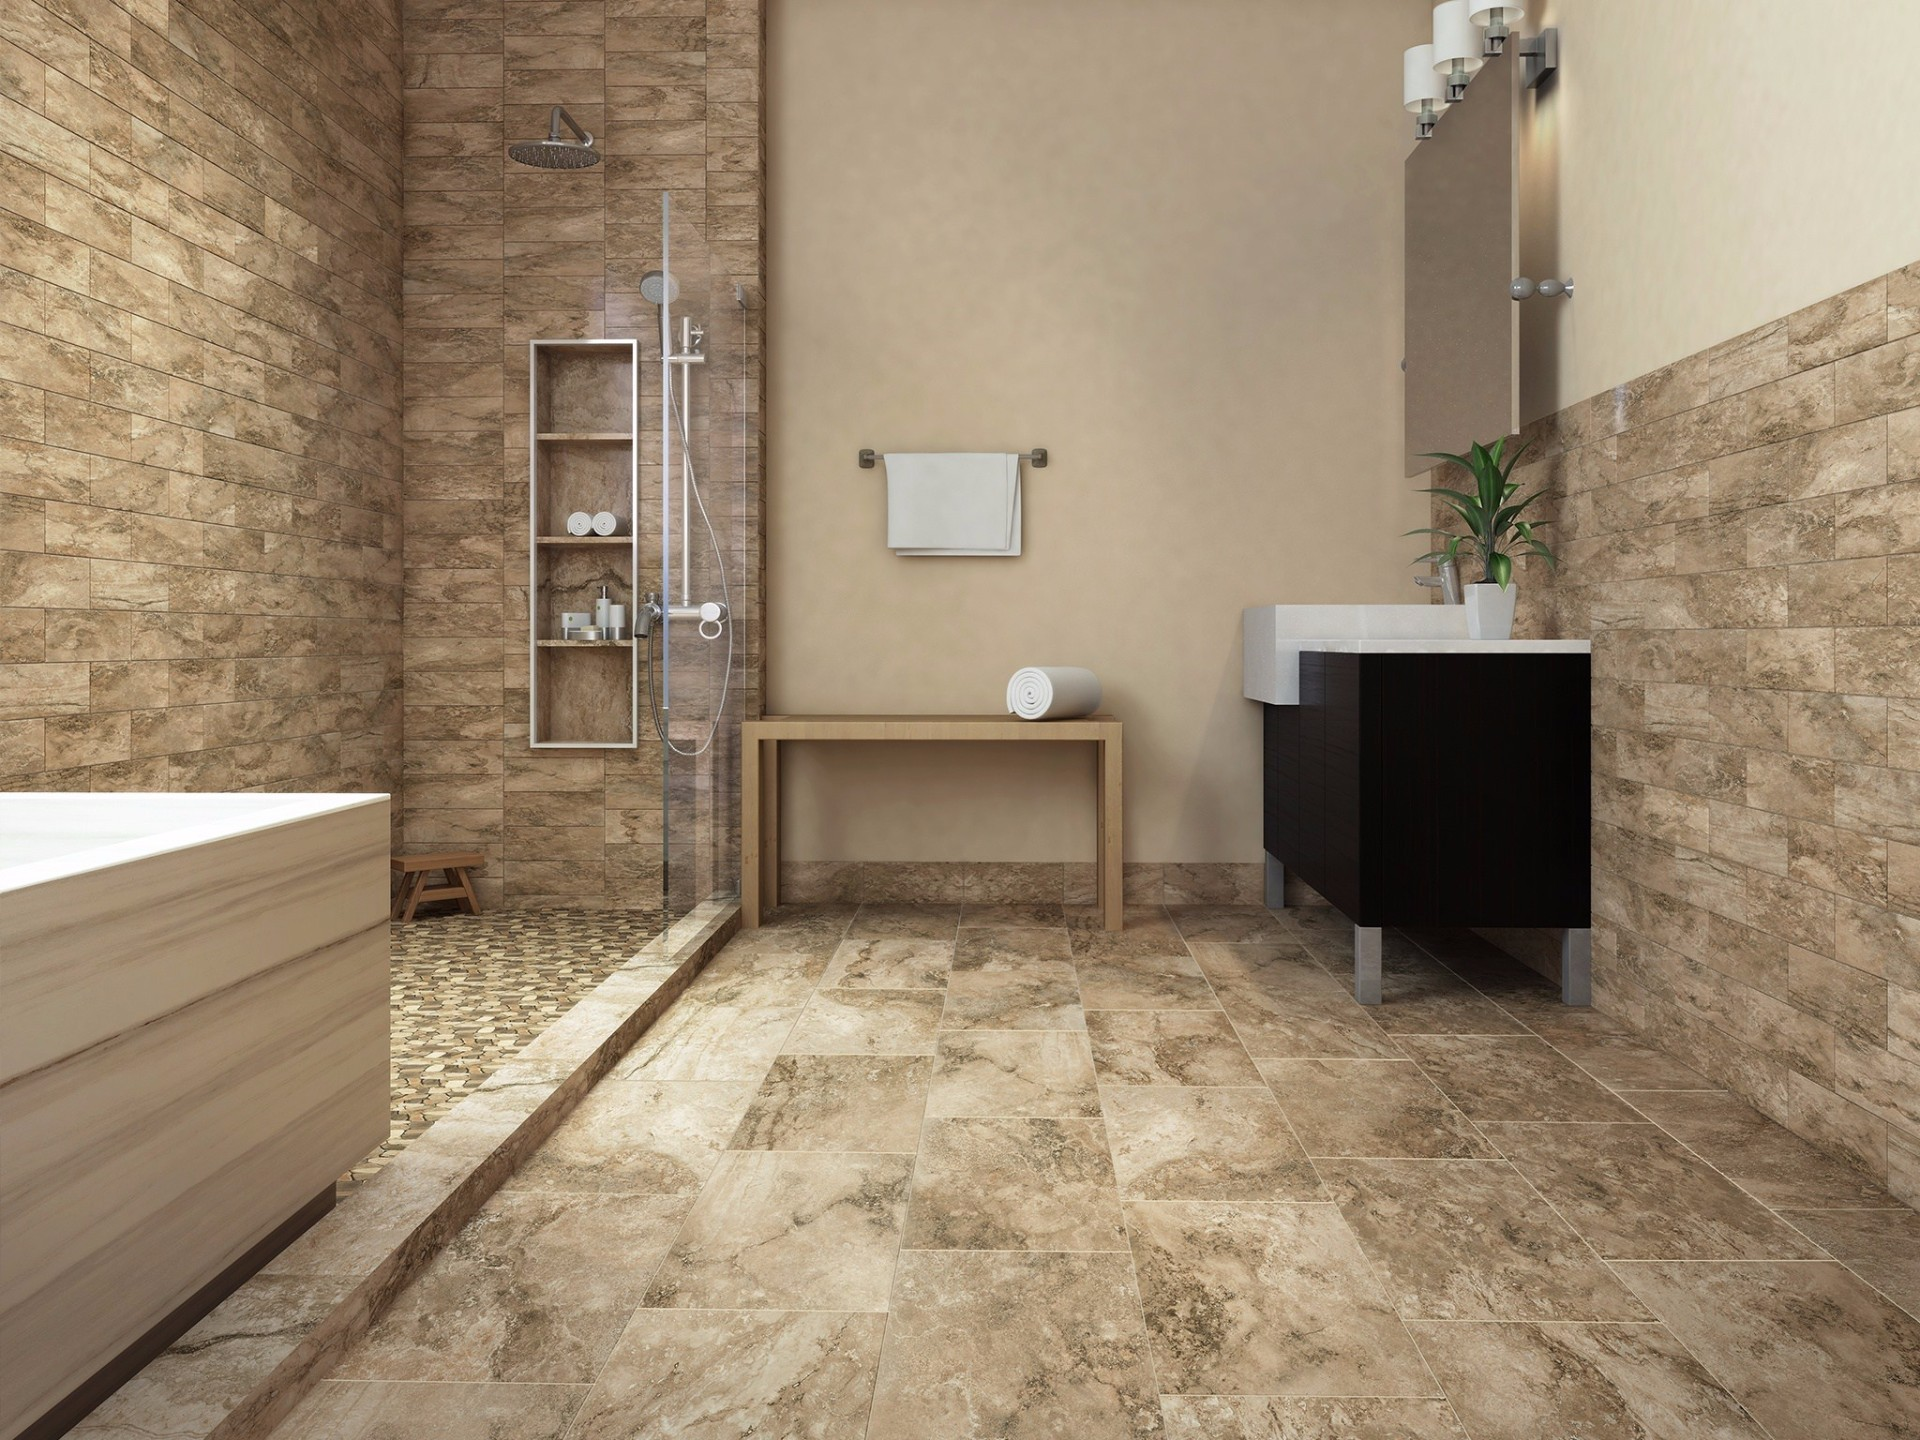 Tile Flooring and Walls : Stonework | Contractors Supply | Petoskey